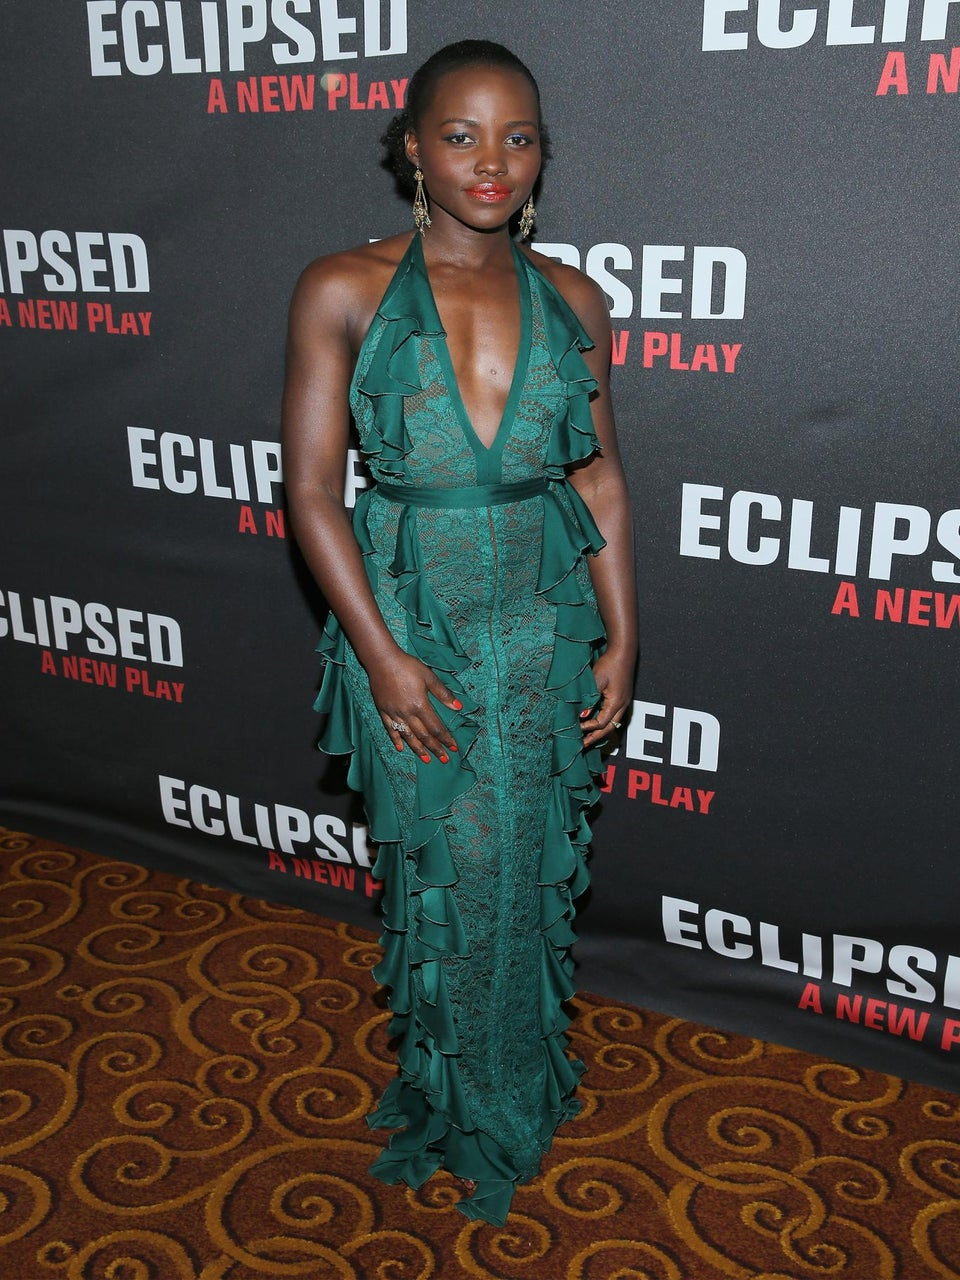 12 Things Lupita Nyong'o Wants You to Know Before Seeing 'Eclipsed'